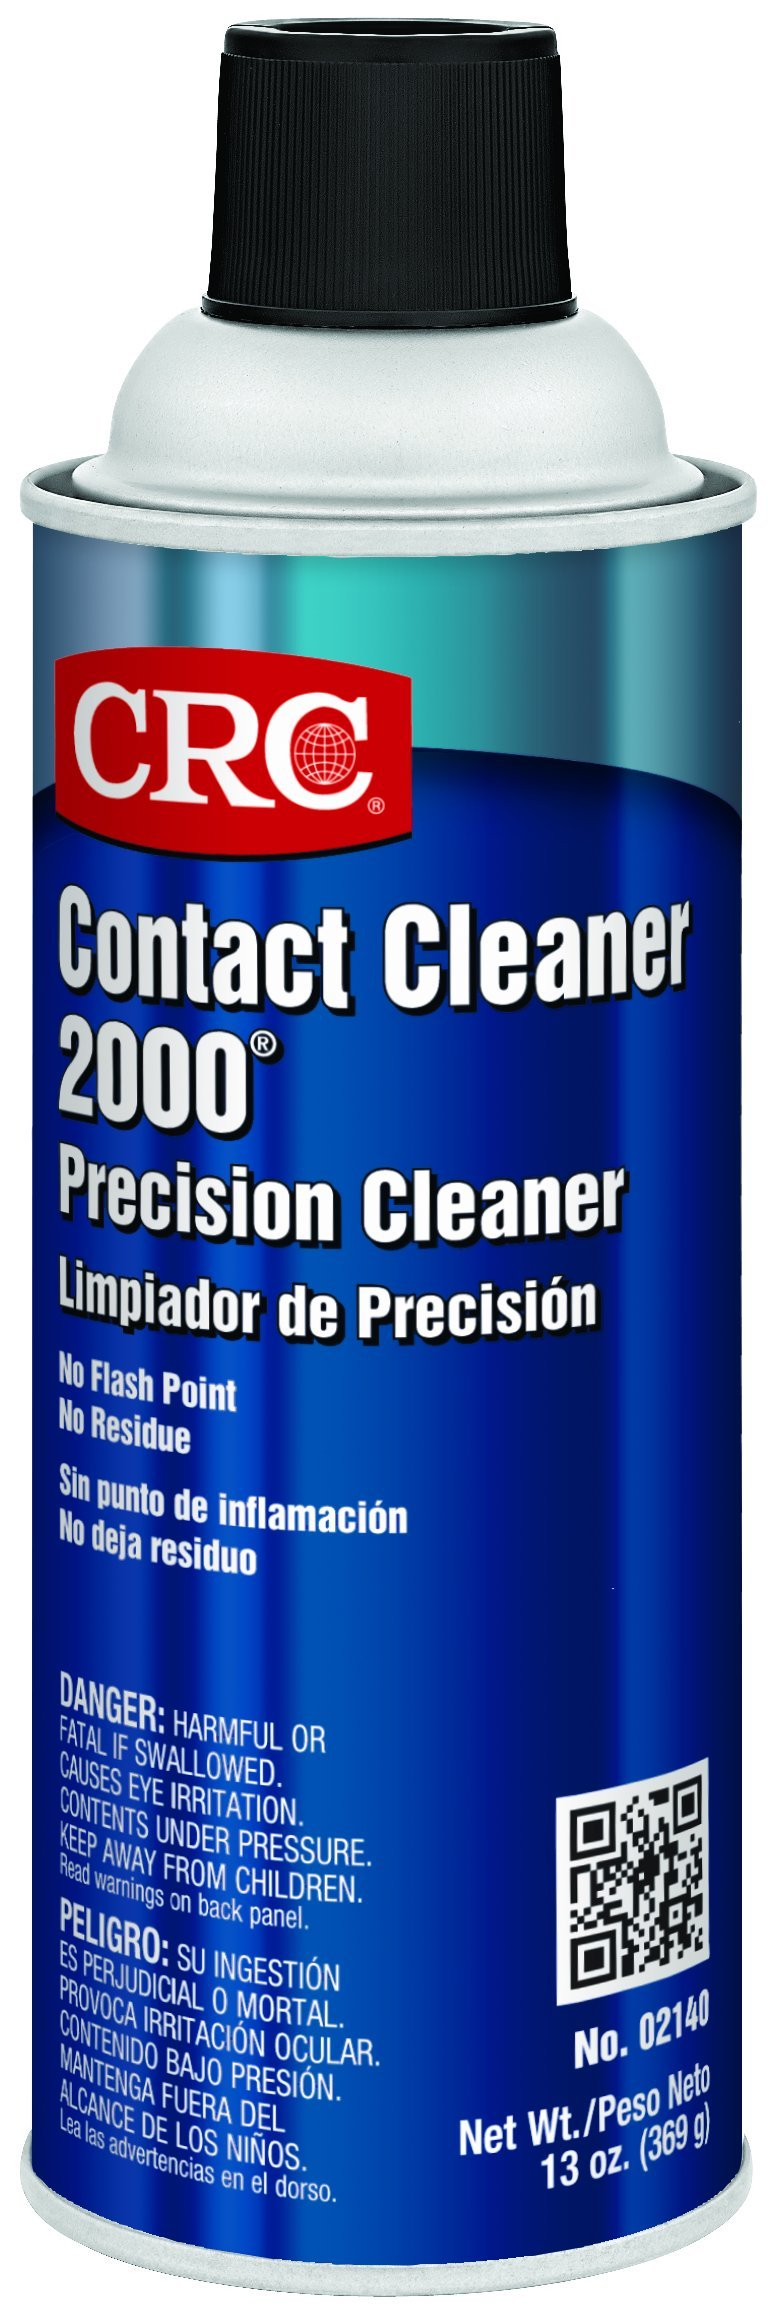 CRC Contact Cleaner 2000 Liquid Precision Cleaner, 13 oz Aerosol Can, Clear